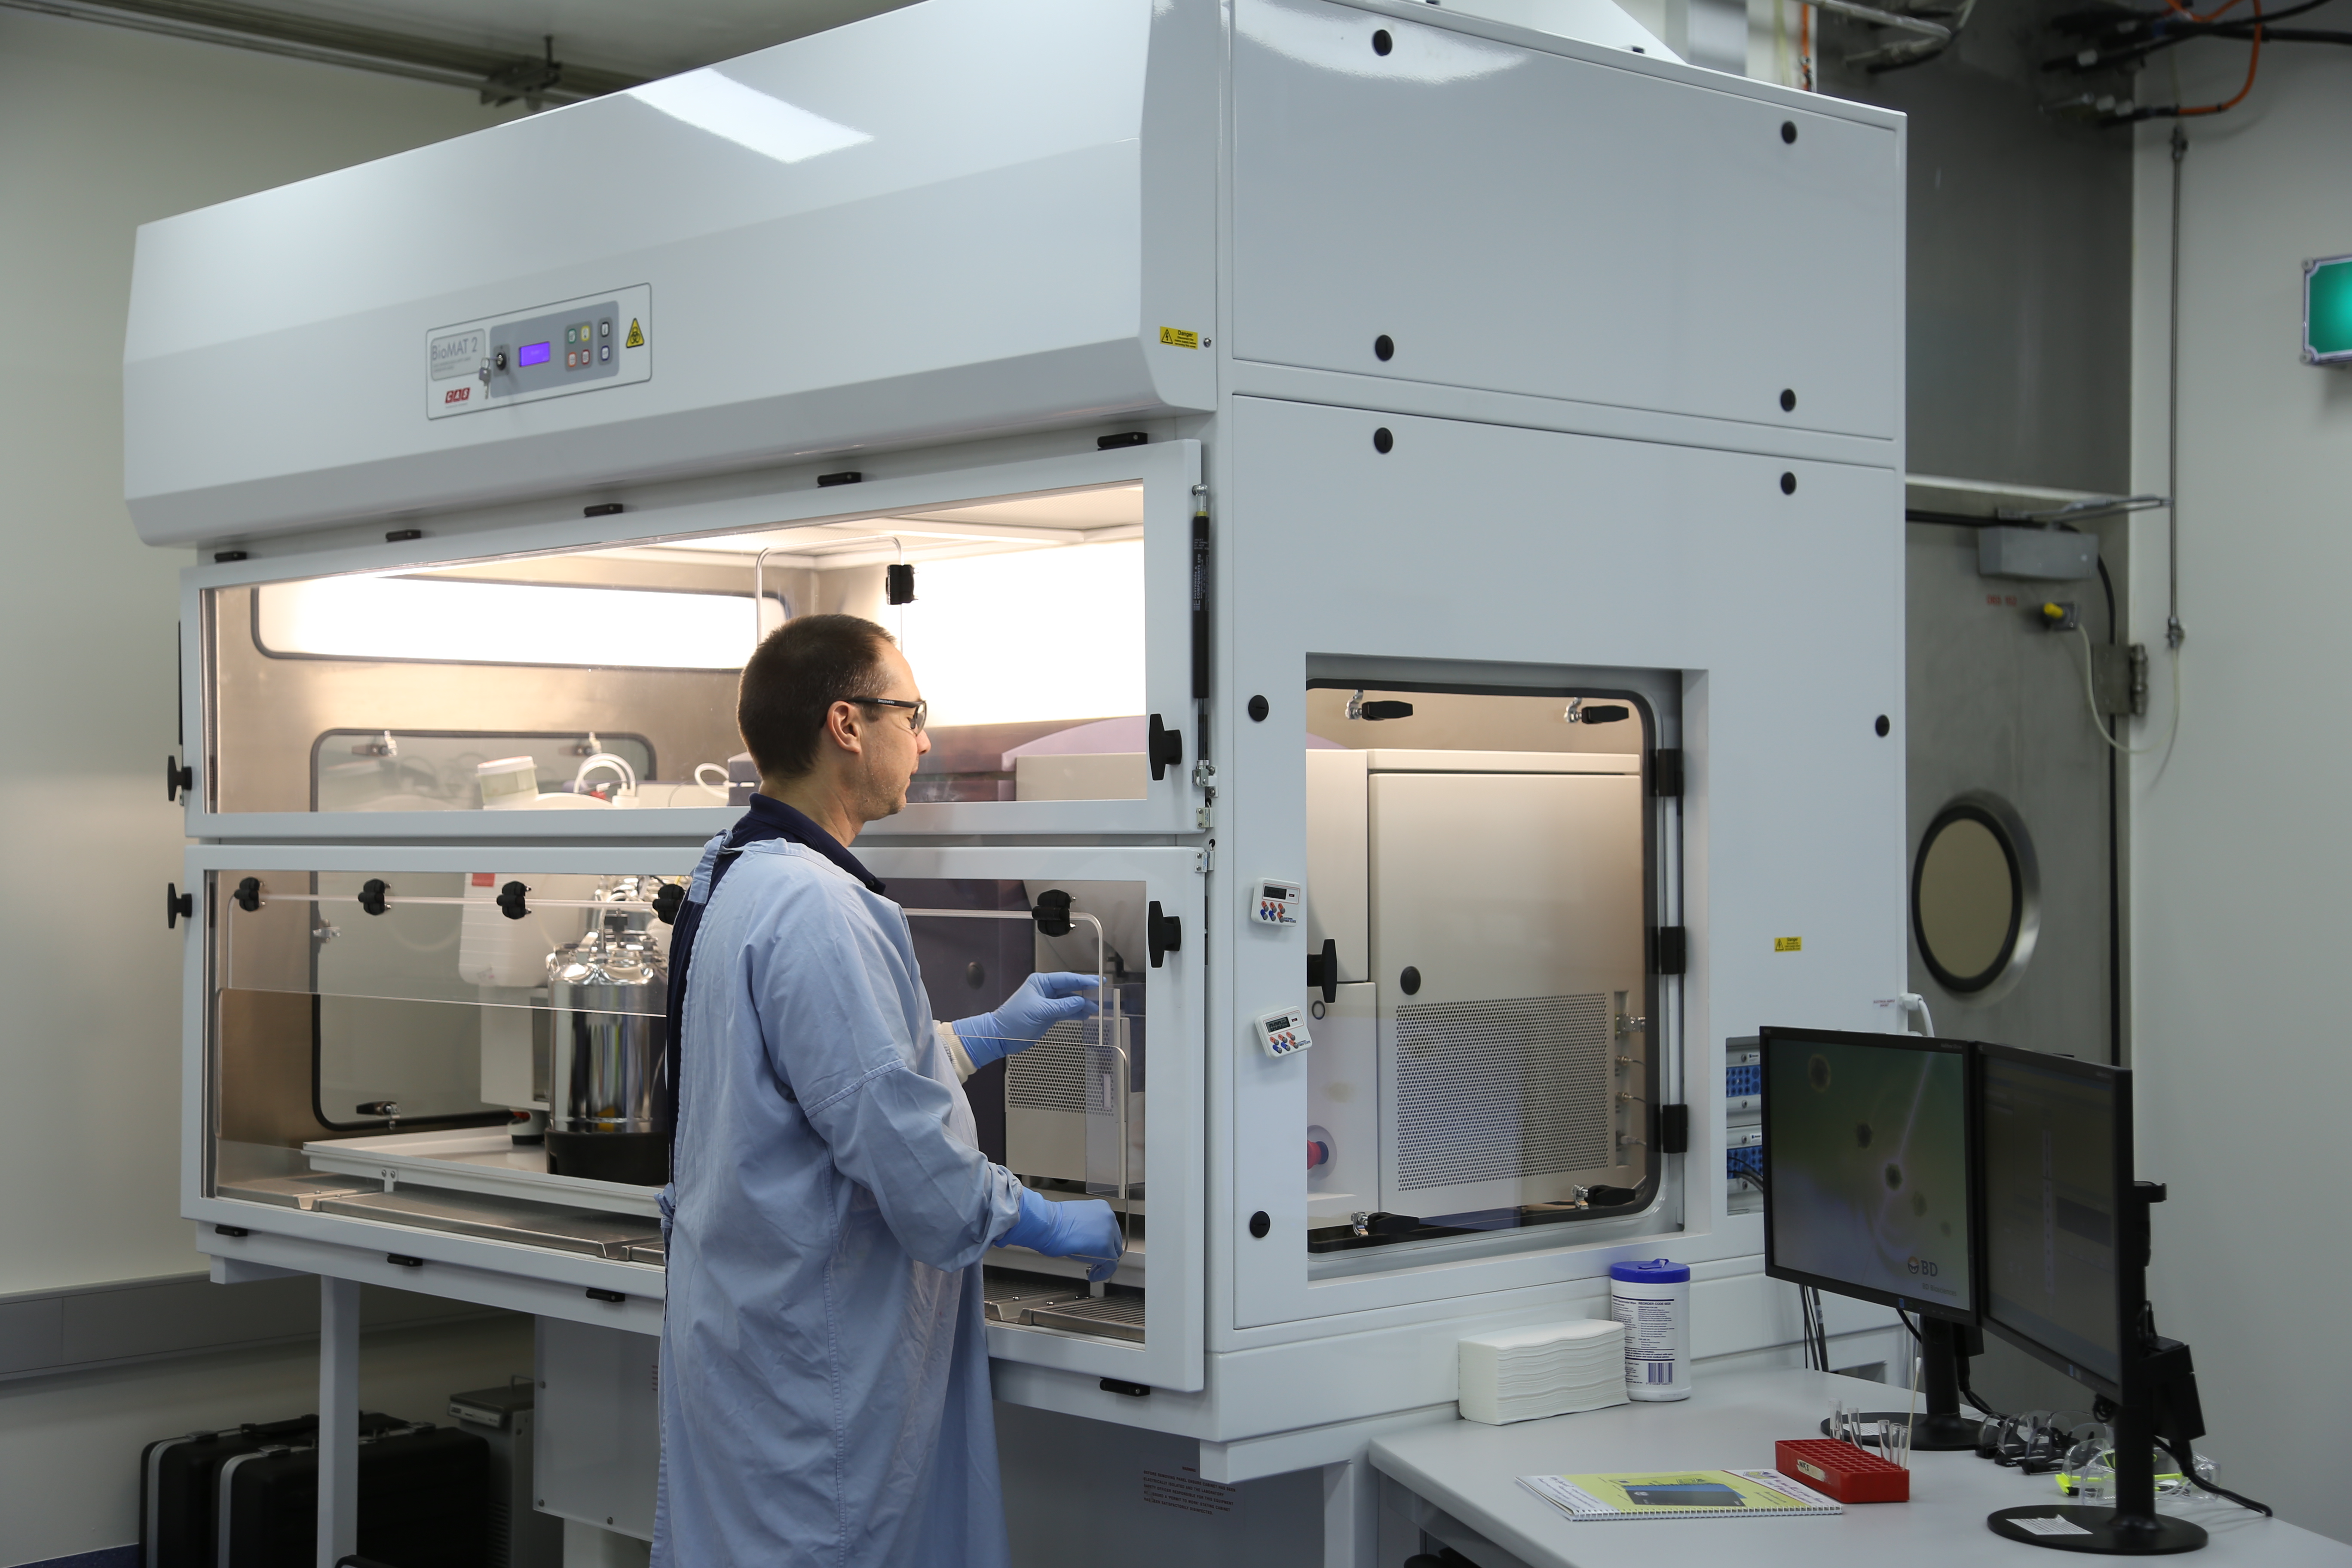 Matt Bruce, a CSIRO immunology researcher, loads a sample into the cell sorter to isolate virus fighting cells.